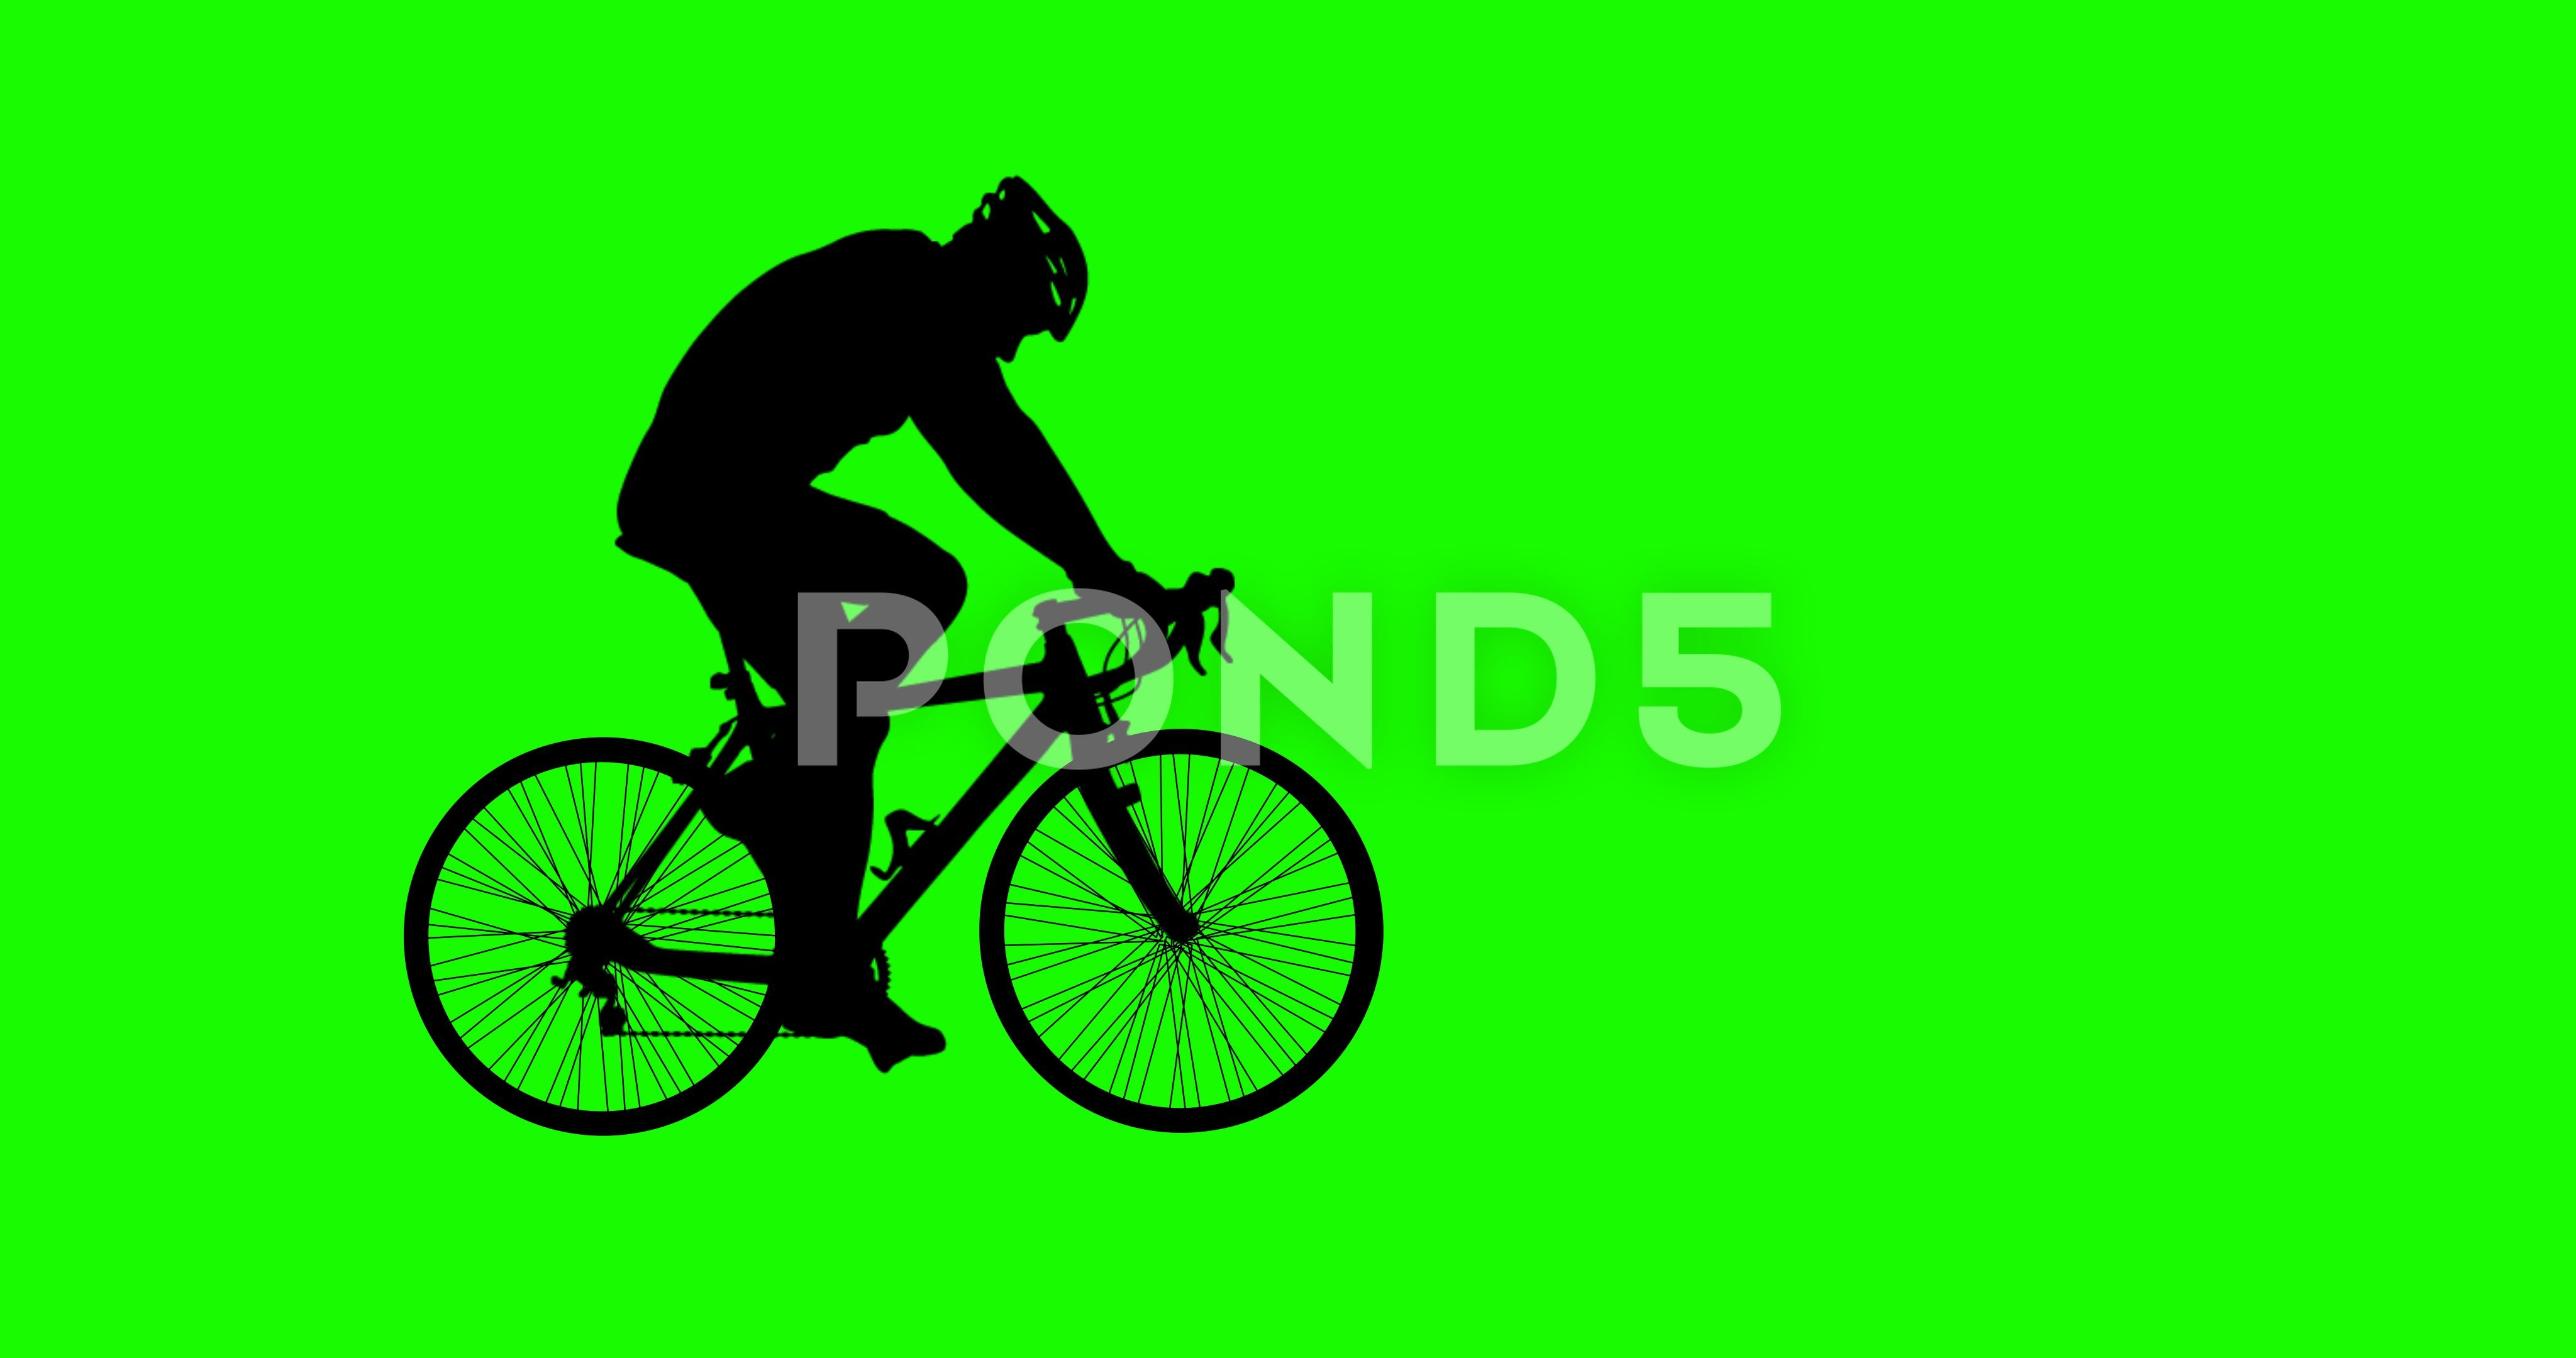 Biker passing through the screen from left to right. Green